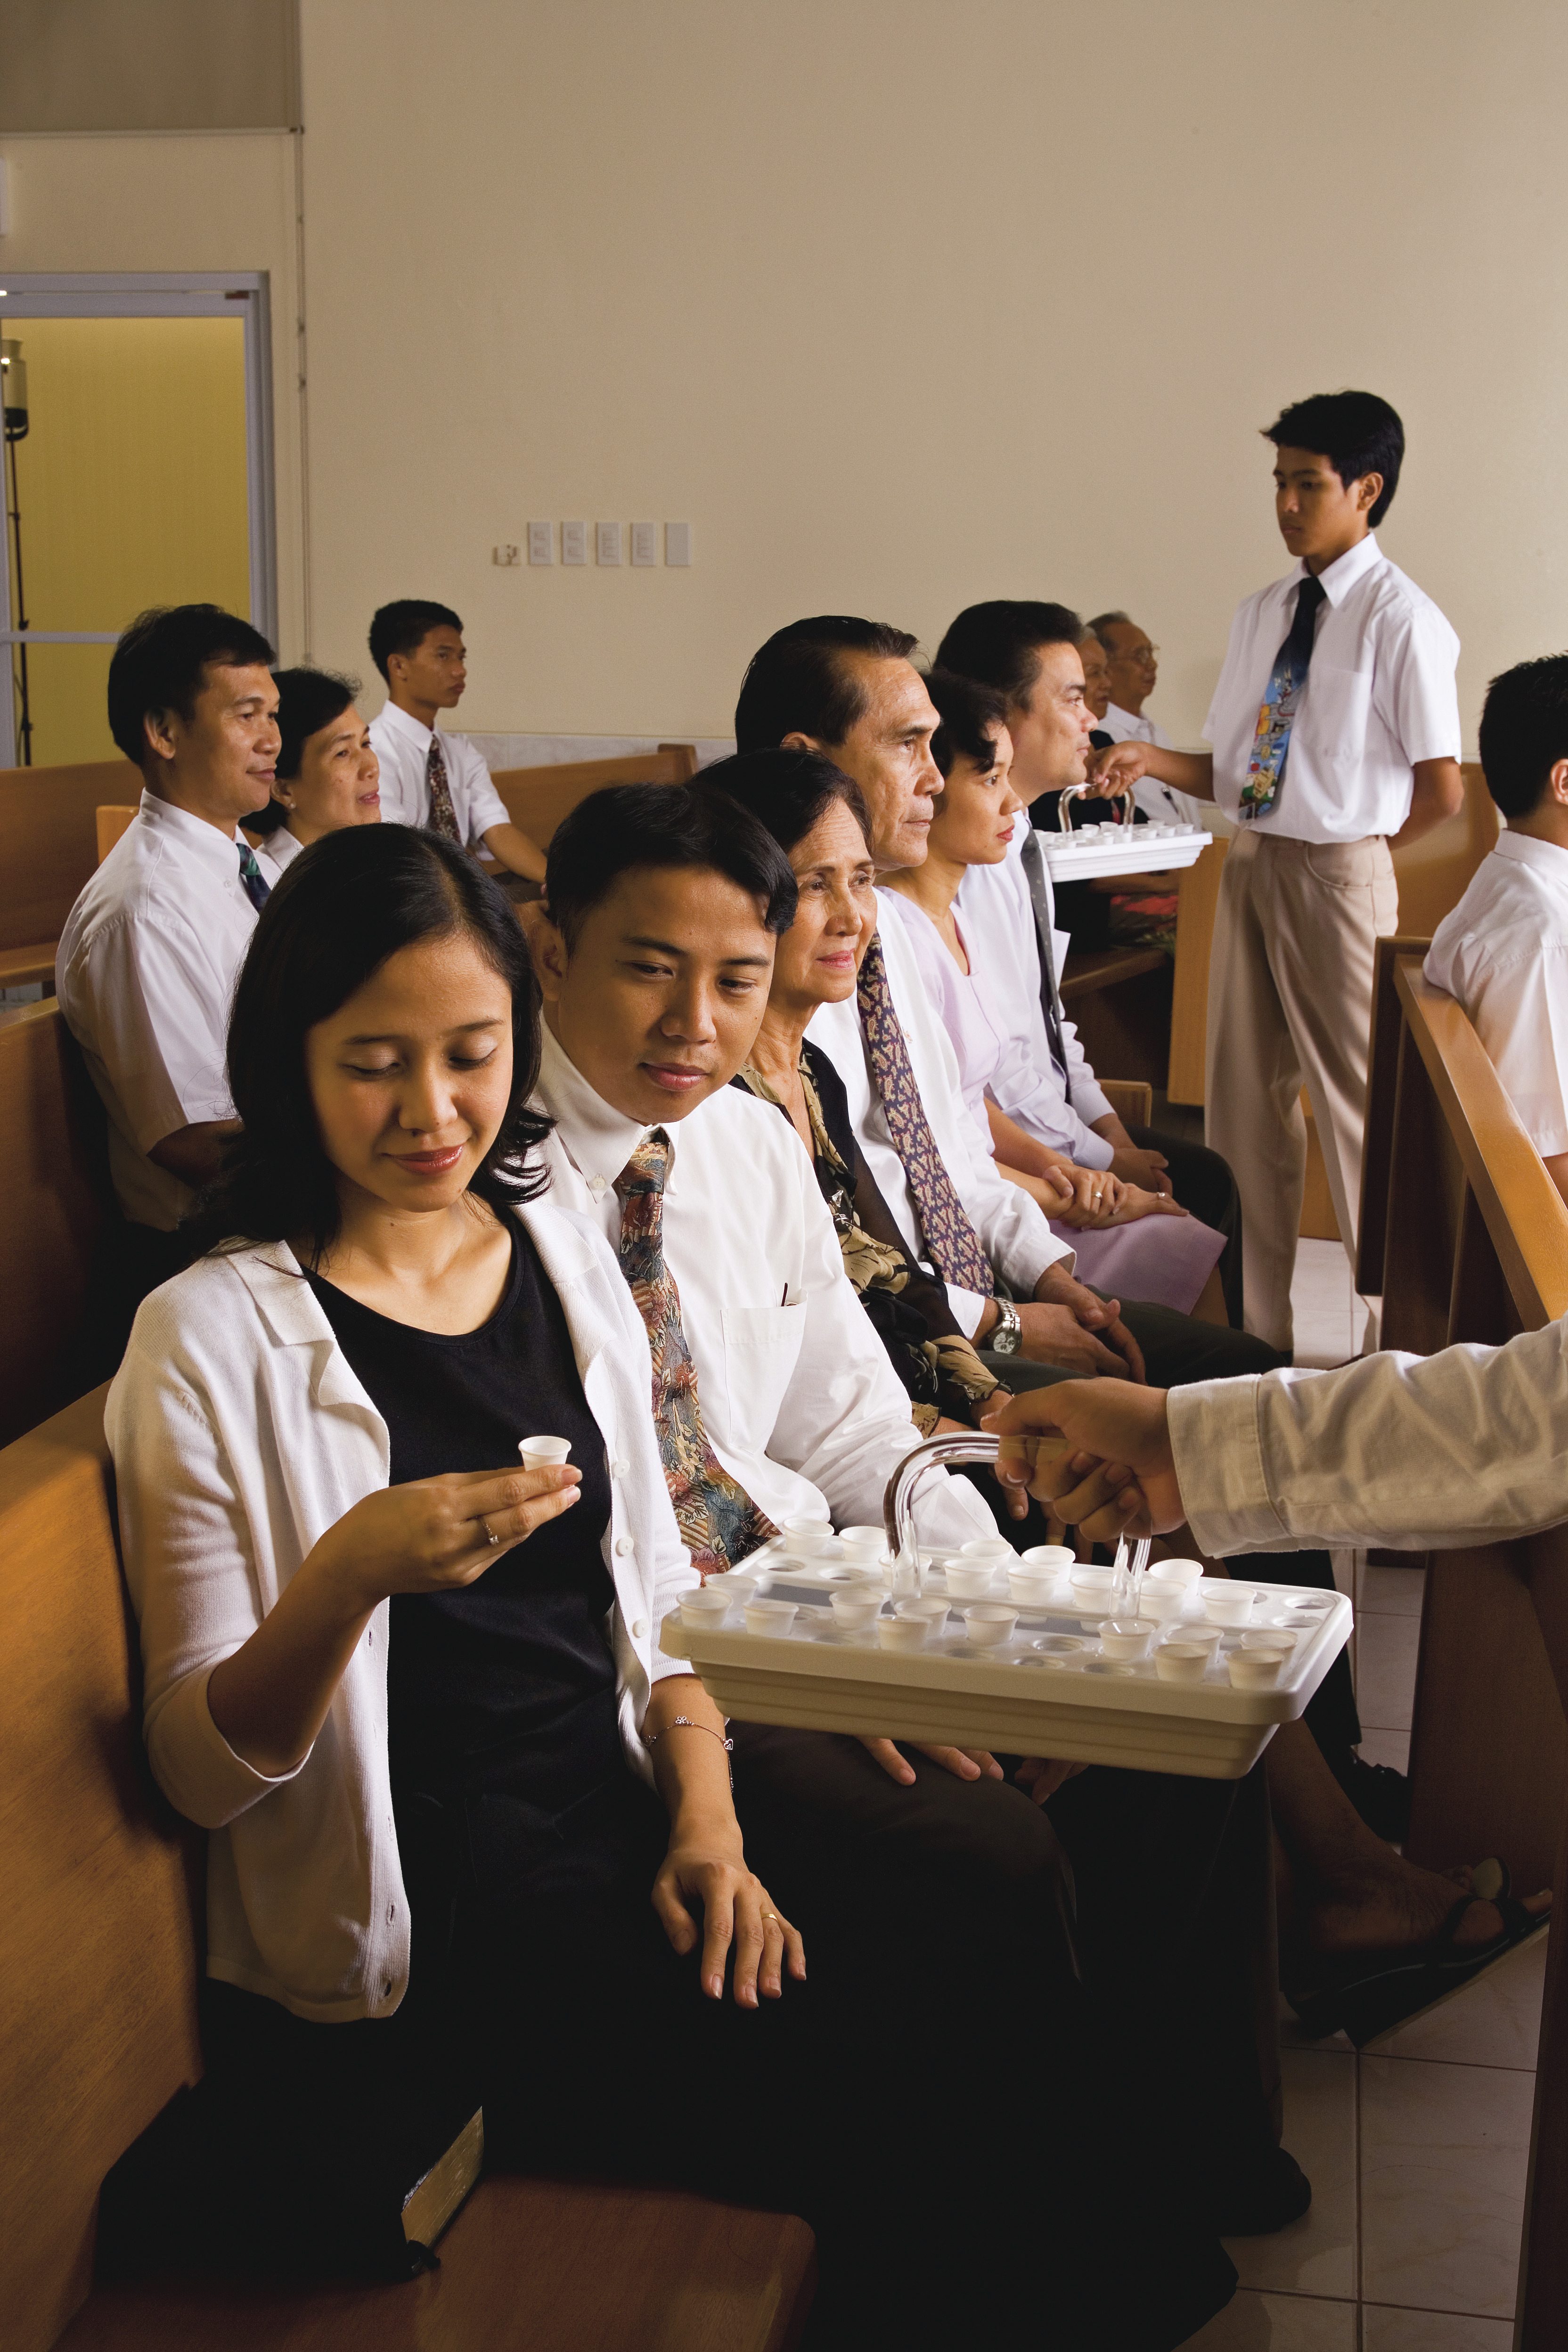 A woman takes the sacrament from a tray being passed to her.